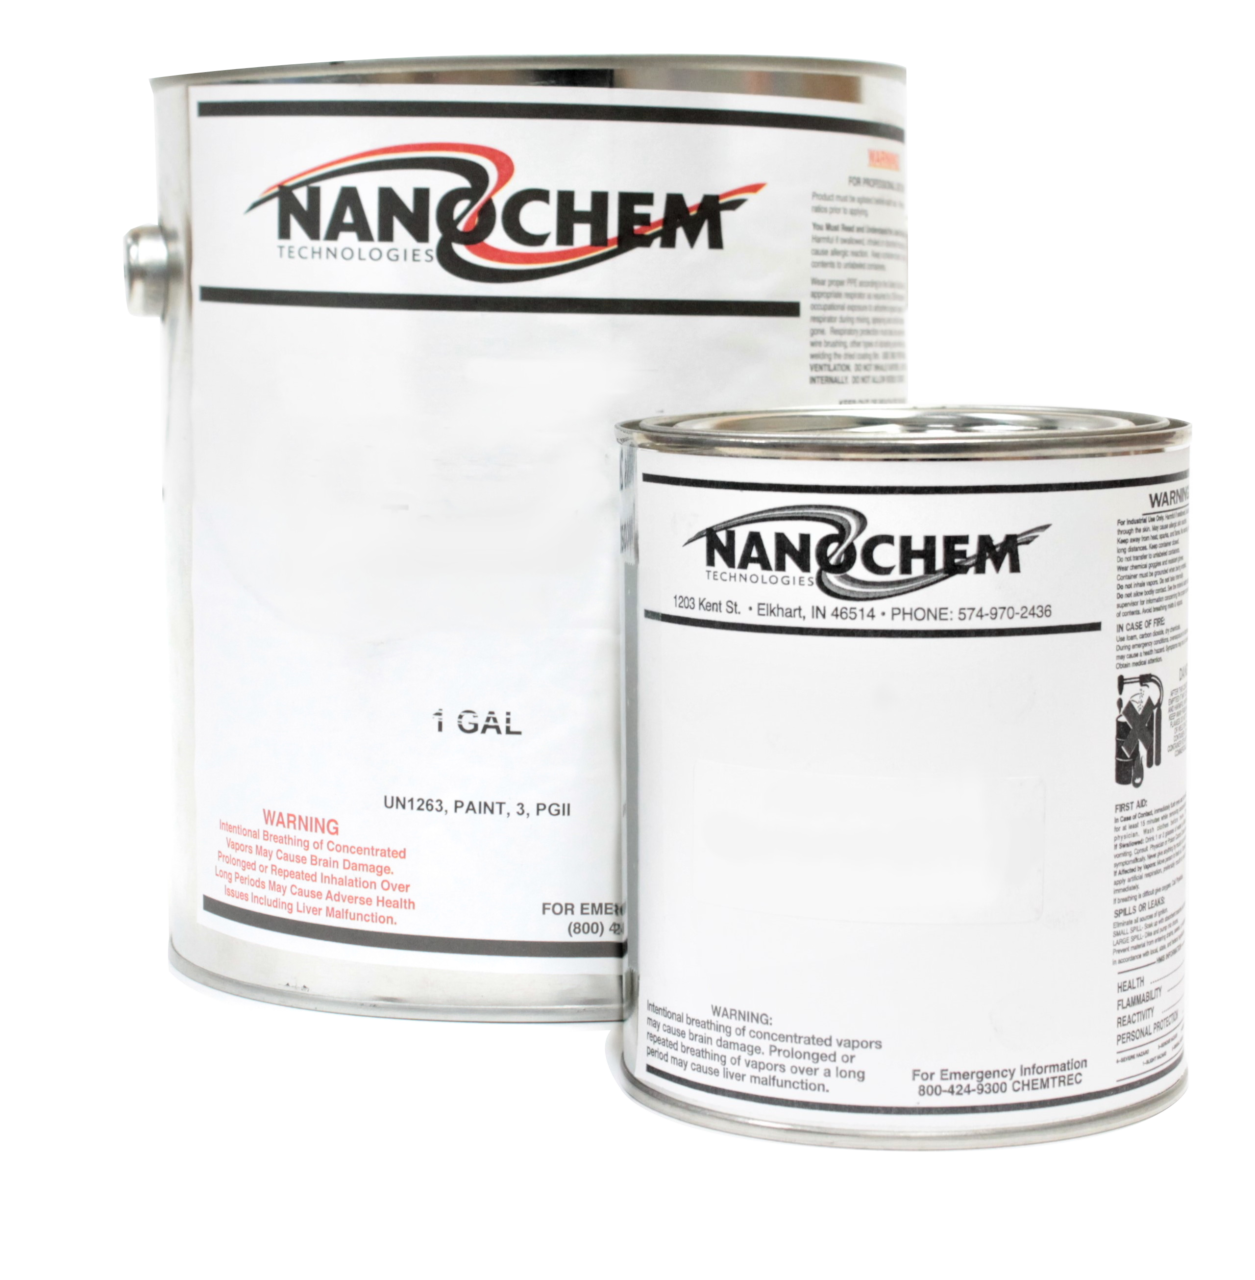 Cans of nanochems fireproof wood protectant